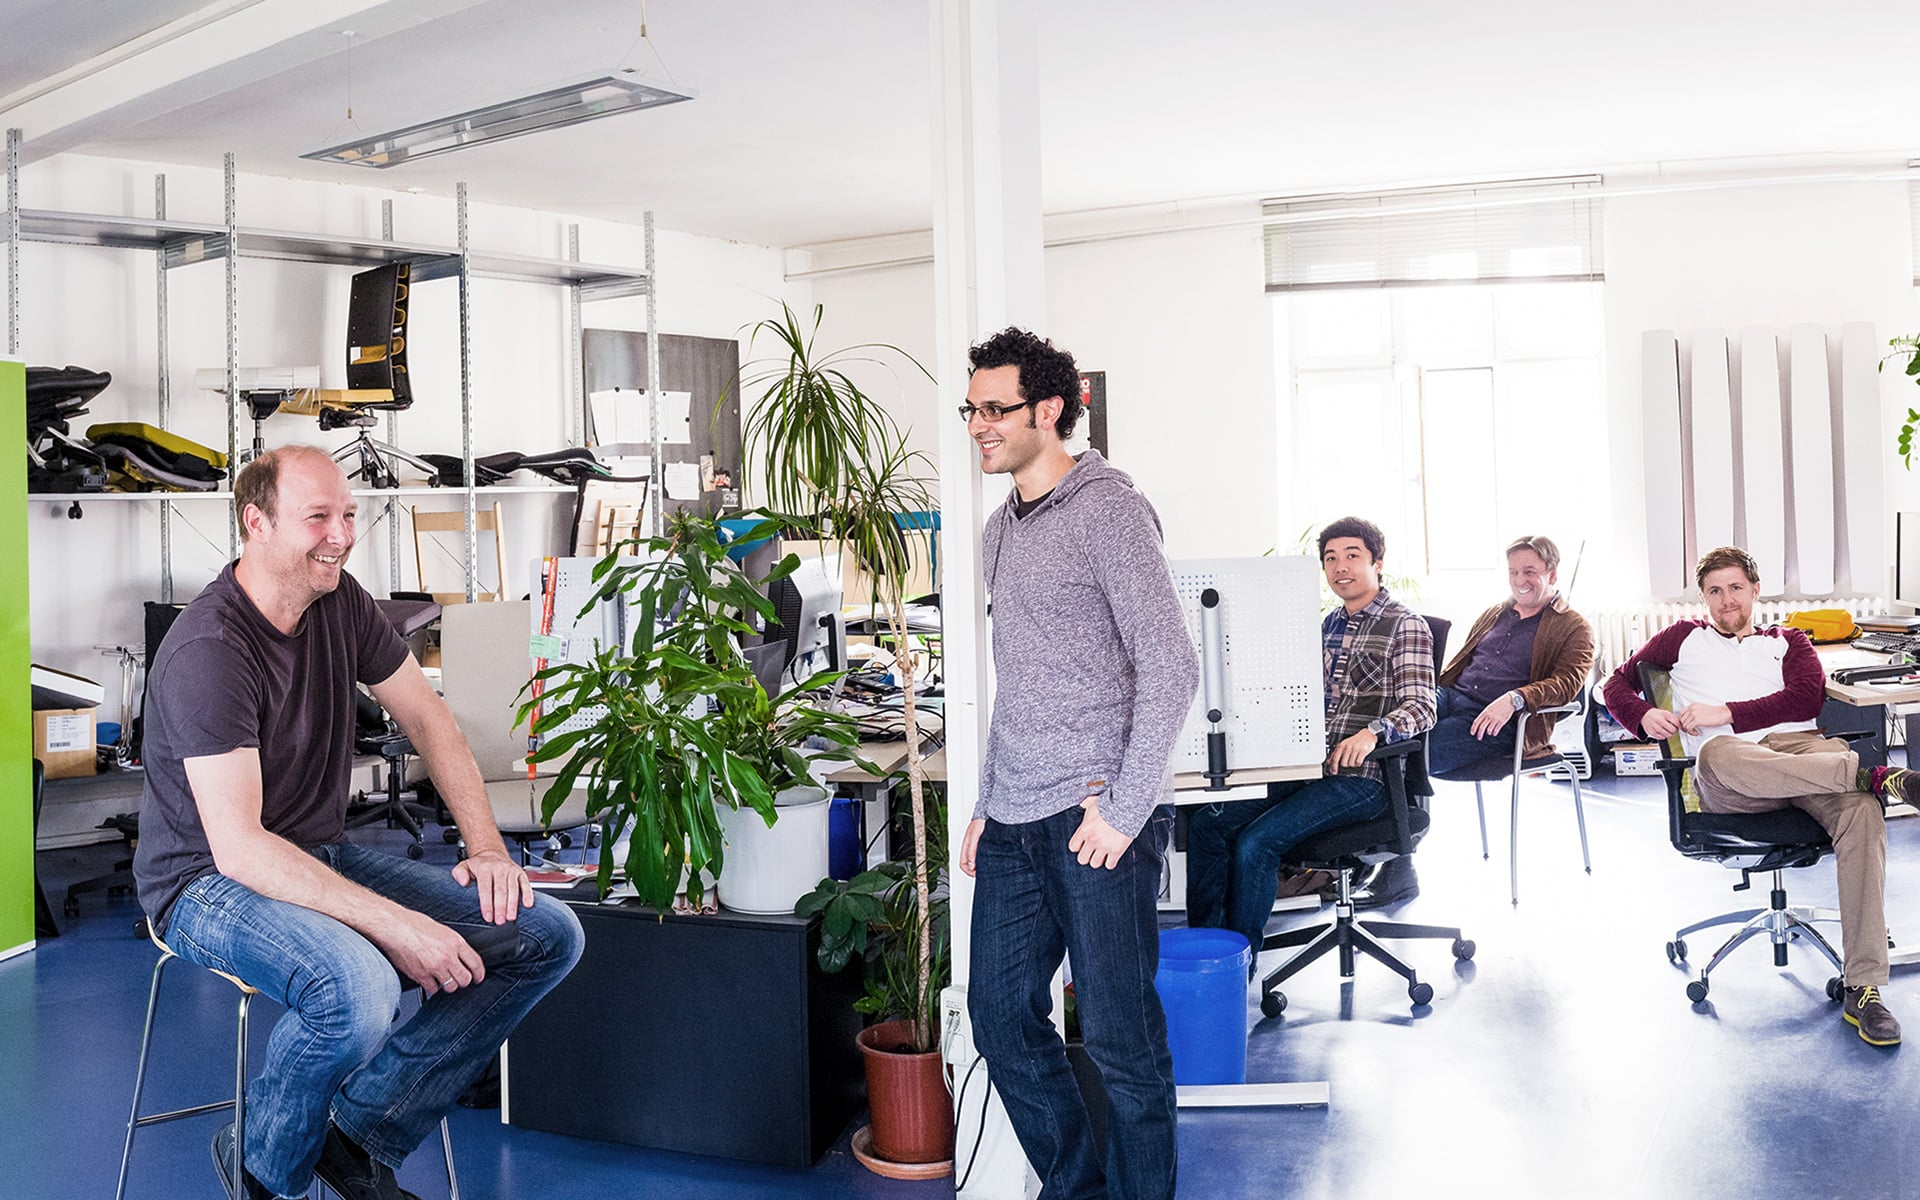 Five ITO Design colleagues in the open space office, in the background prototypes of office chairs